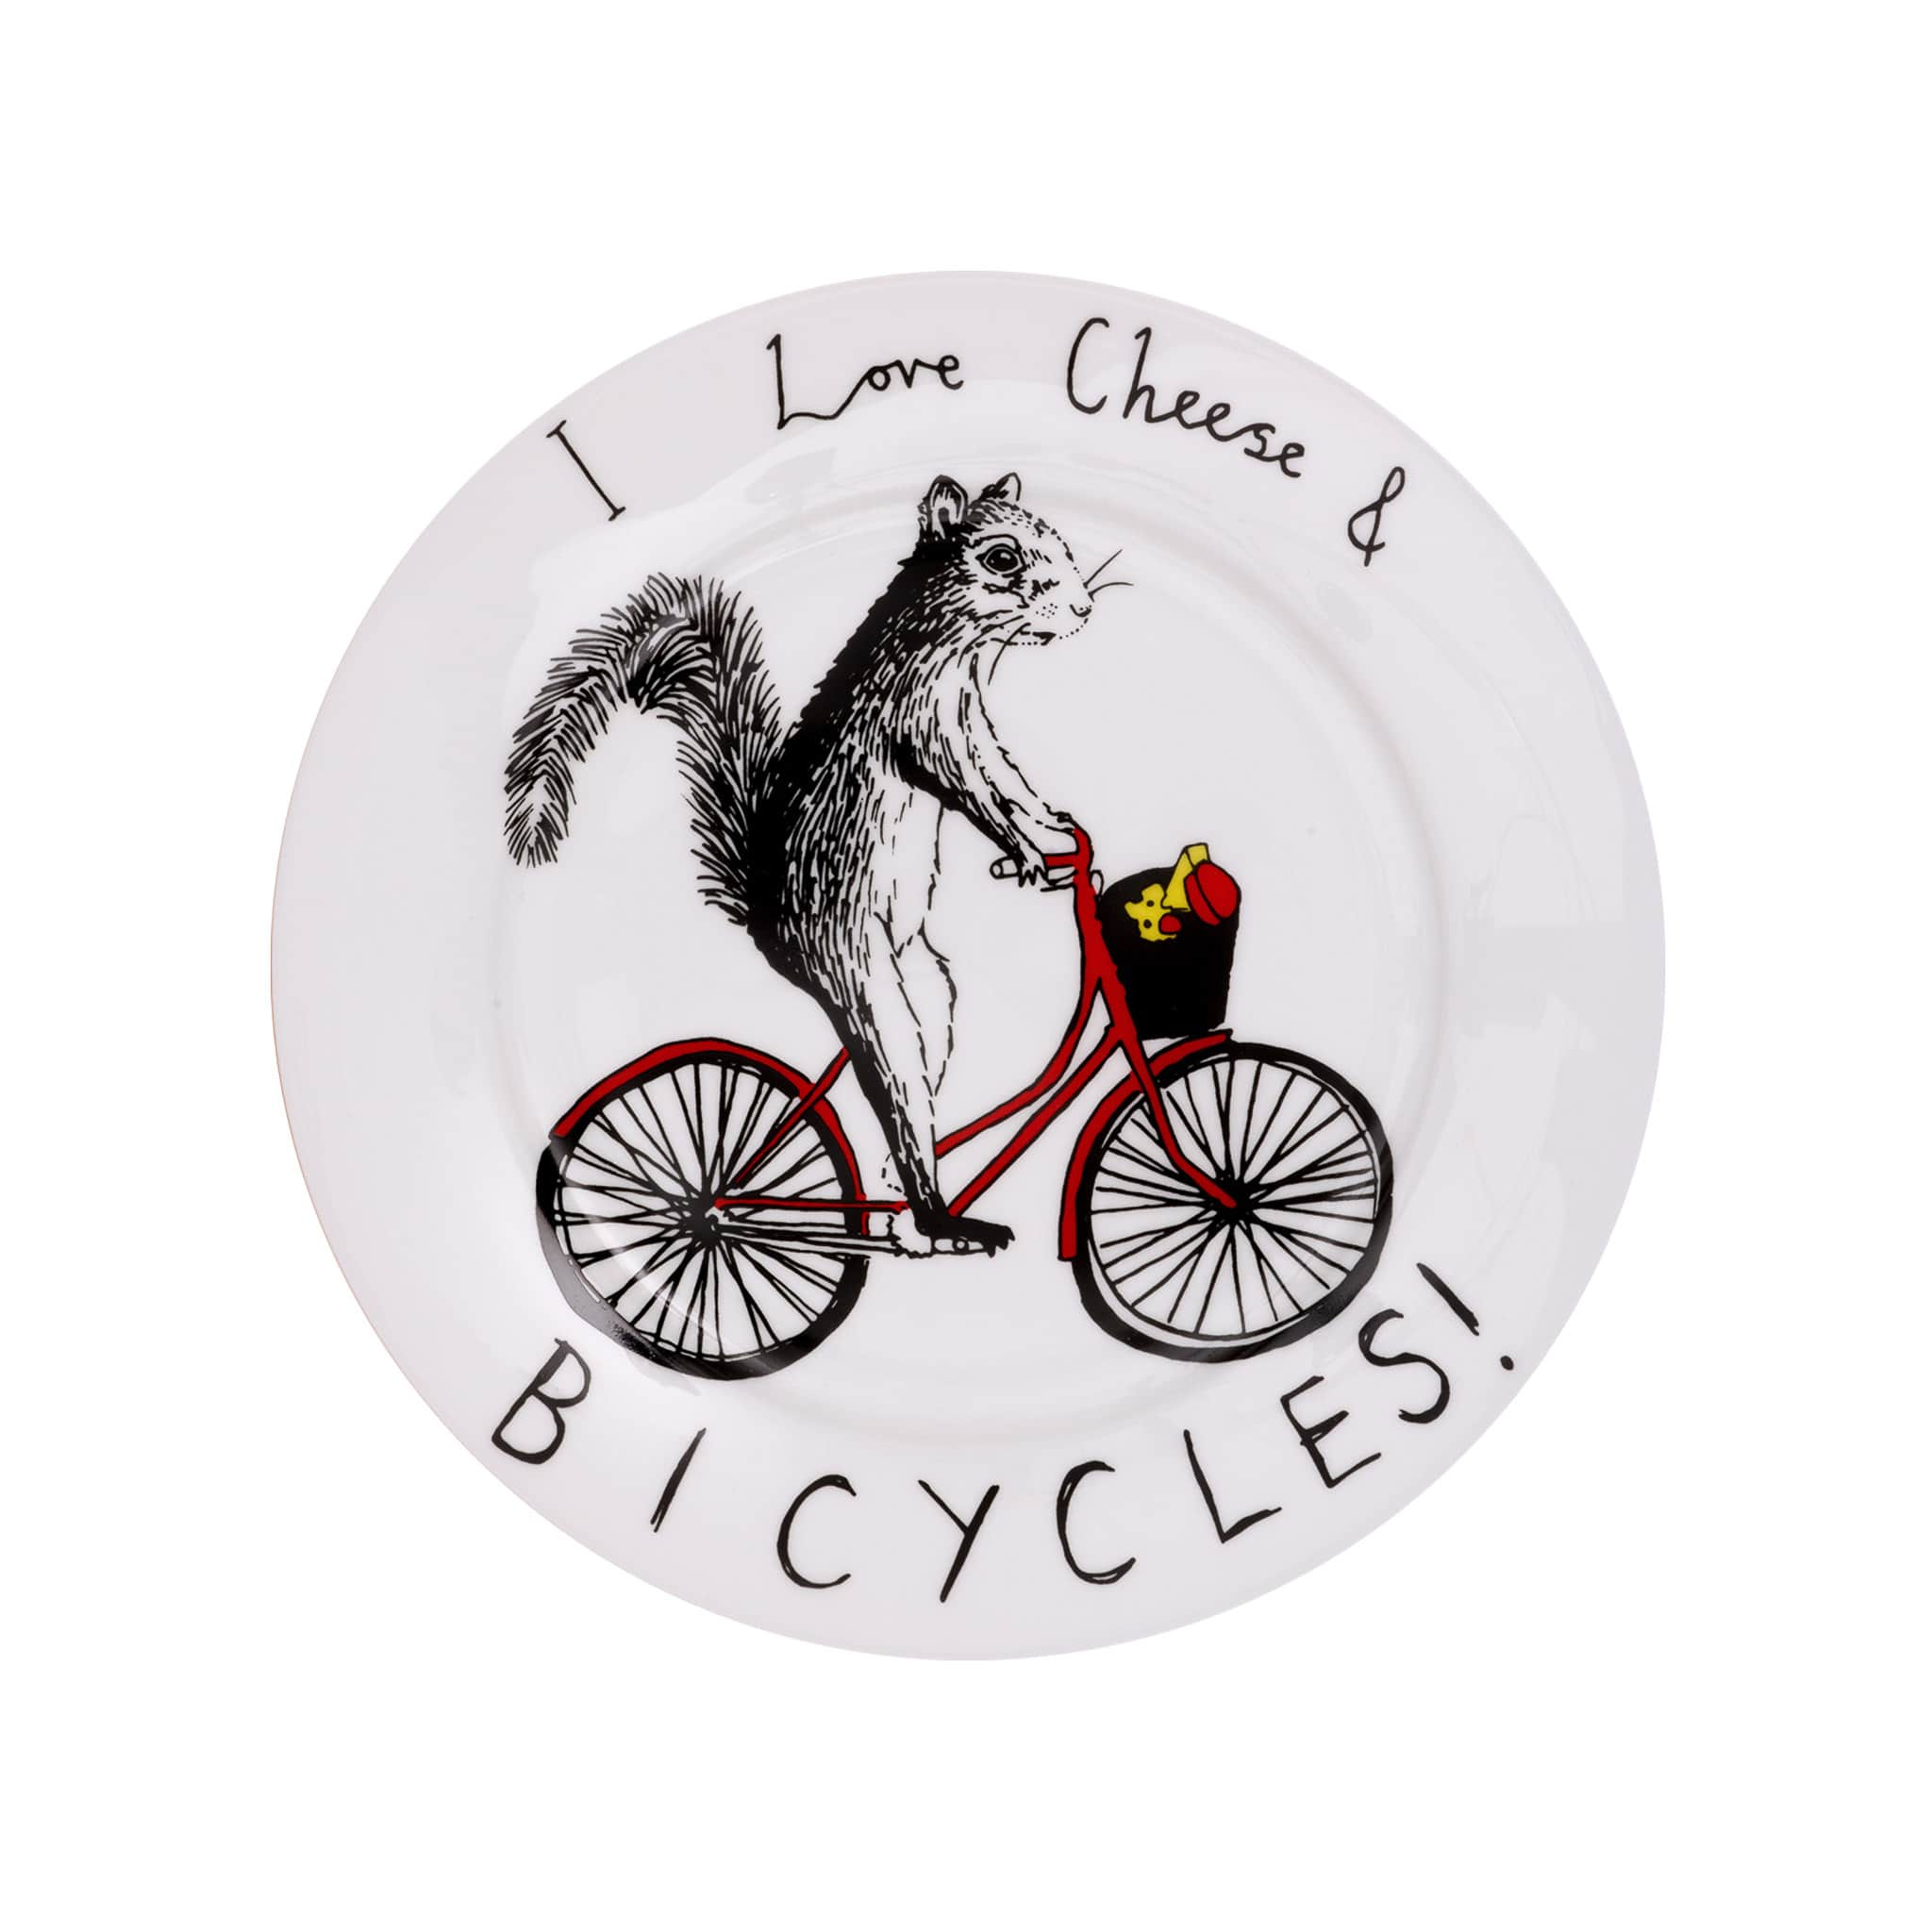 I Love Cheese & Bicycles Side Plate 20cm